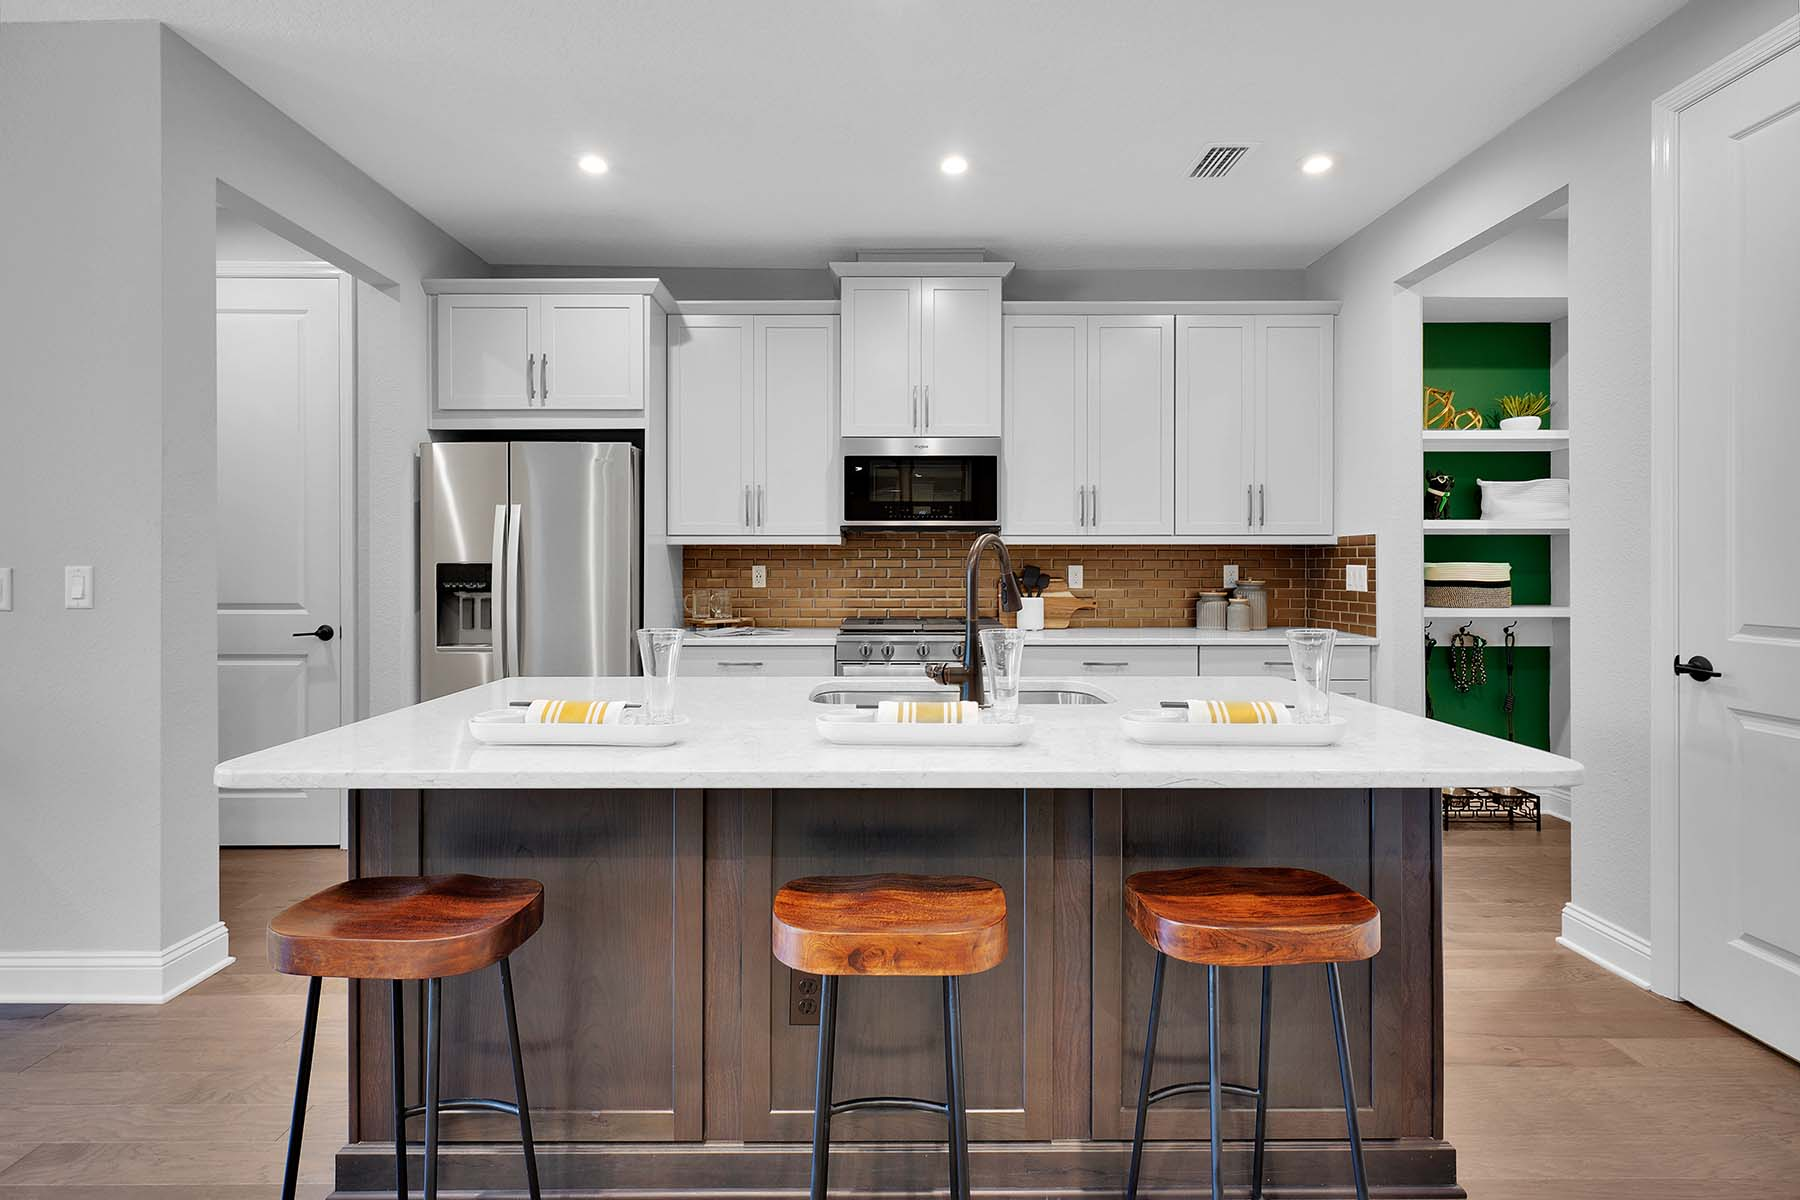 Talise Plan Kitchen at Pablo Cove in Jacksonville Florida by Mattamy Homes